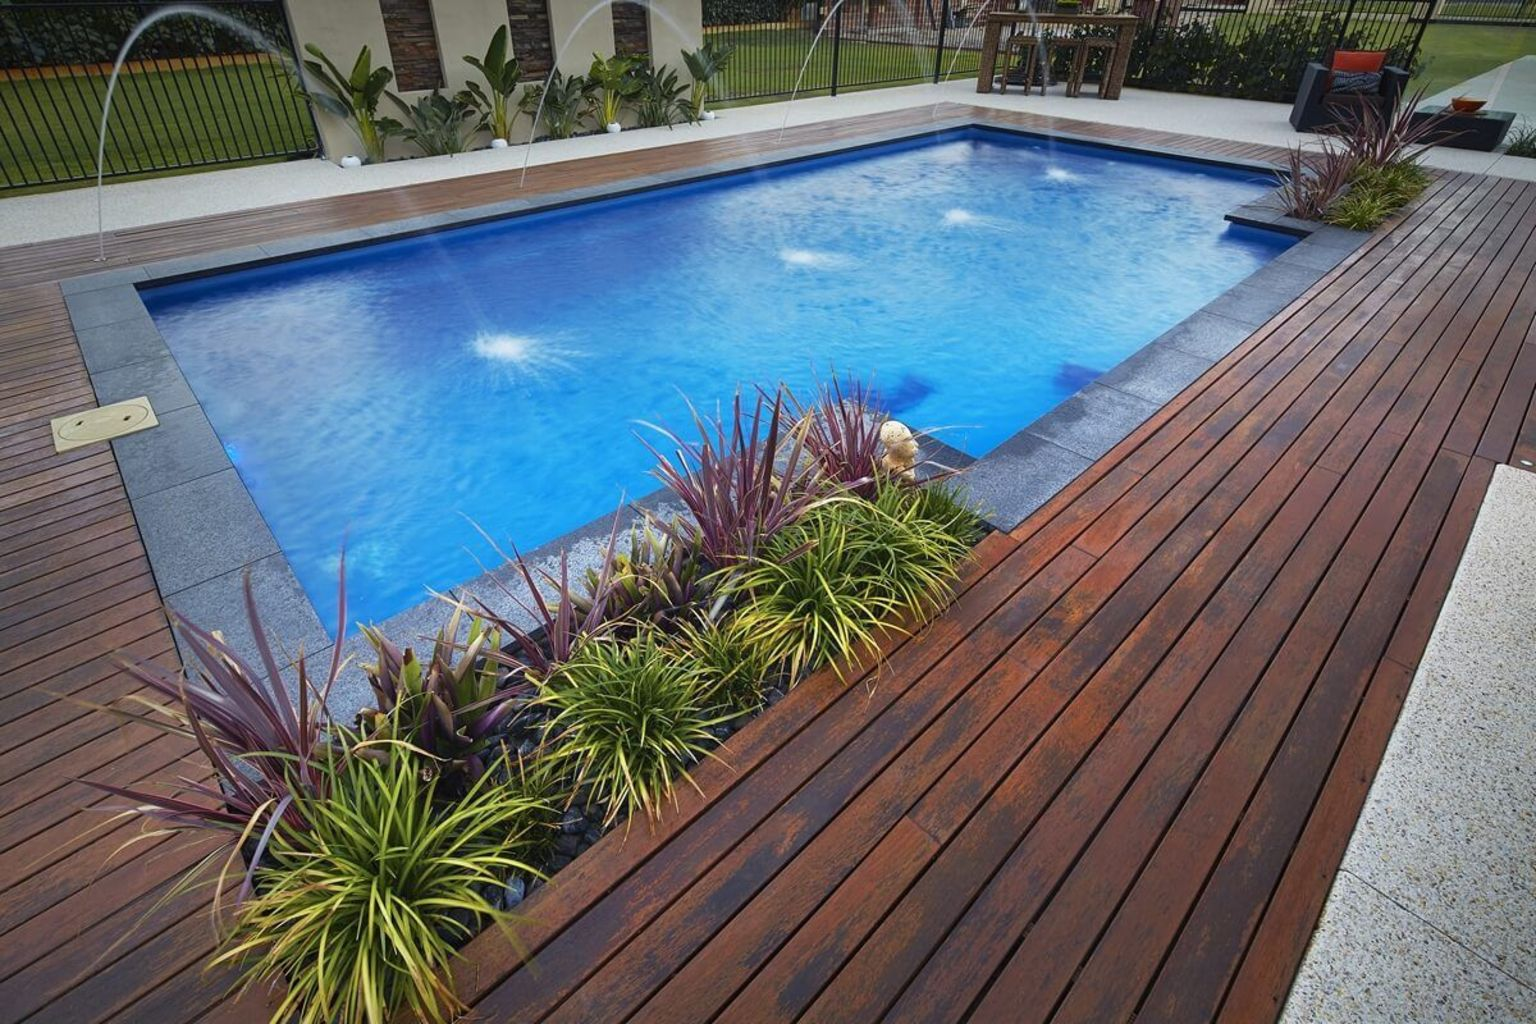 Small swimming pools made for small spaces and tight budgets Part 25